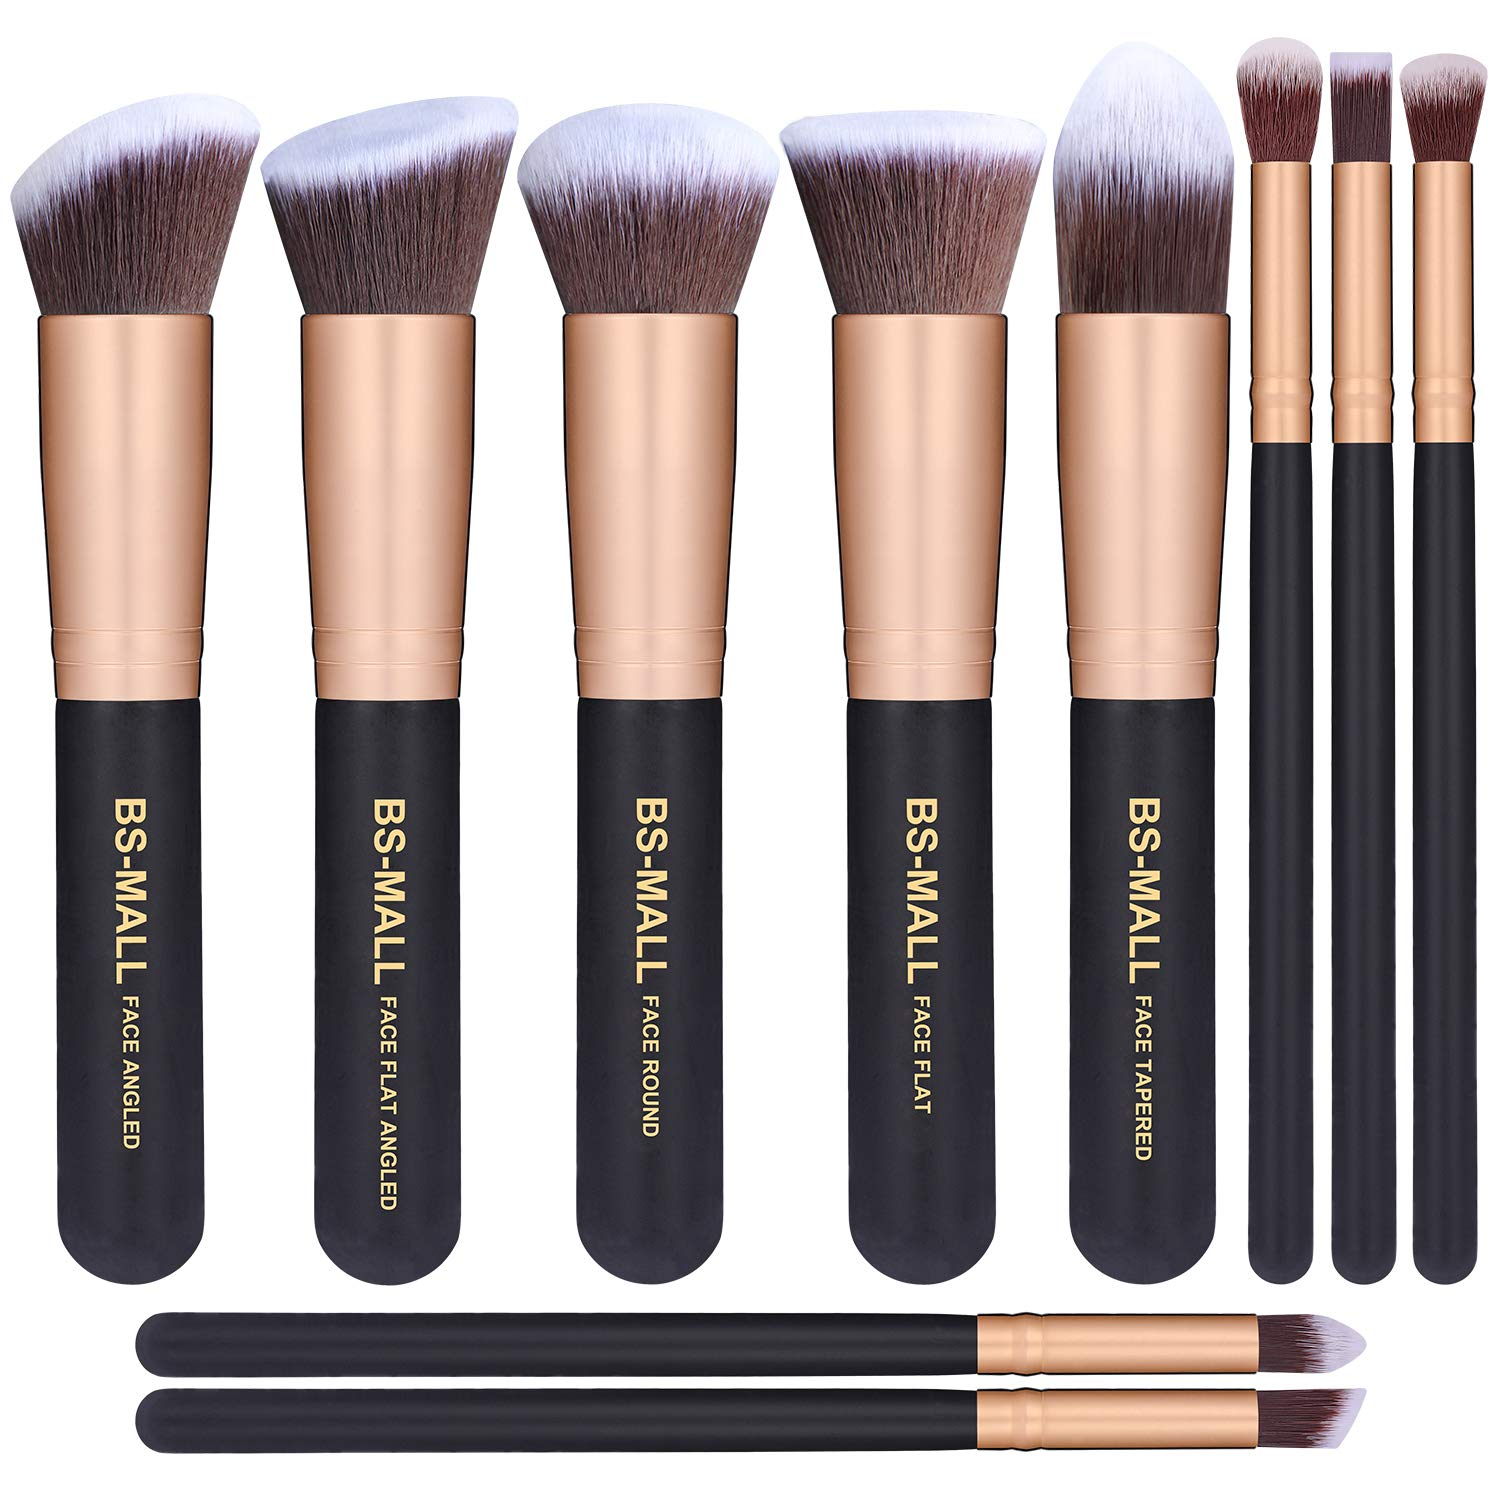 BS-MALL(TM) Makeup Brushes Premium Makeup Brush Set Synthetic Kabuki Cosmetics Foundation Blending Blush Eyeliner Face Powder Brush Makeup Brush Kit (10pcs, Golden Black): Beauty